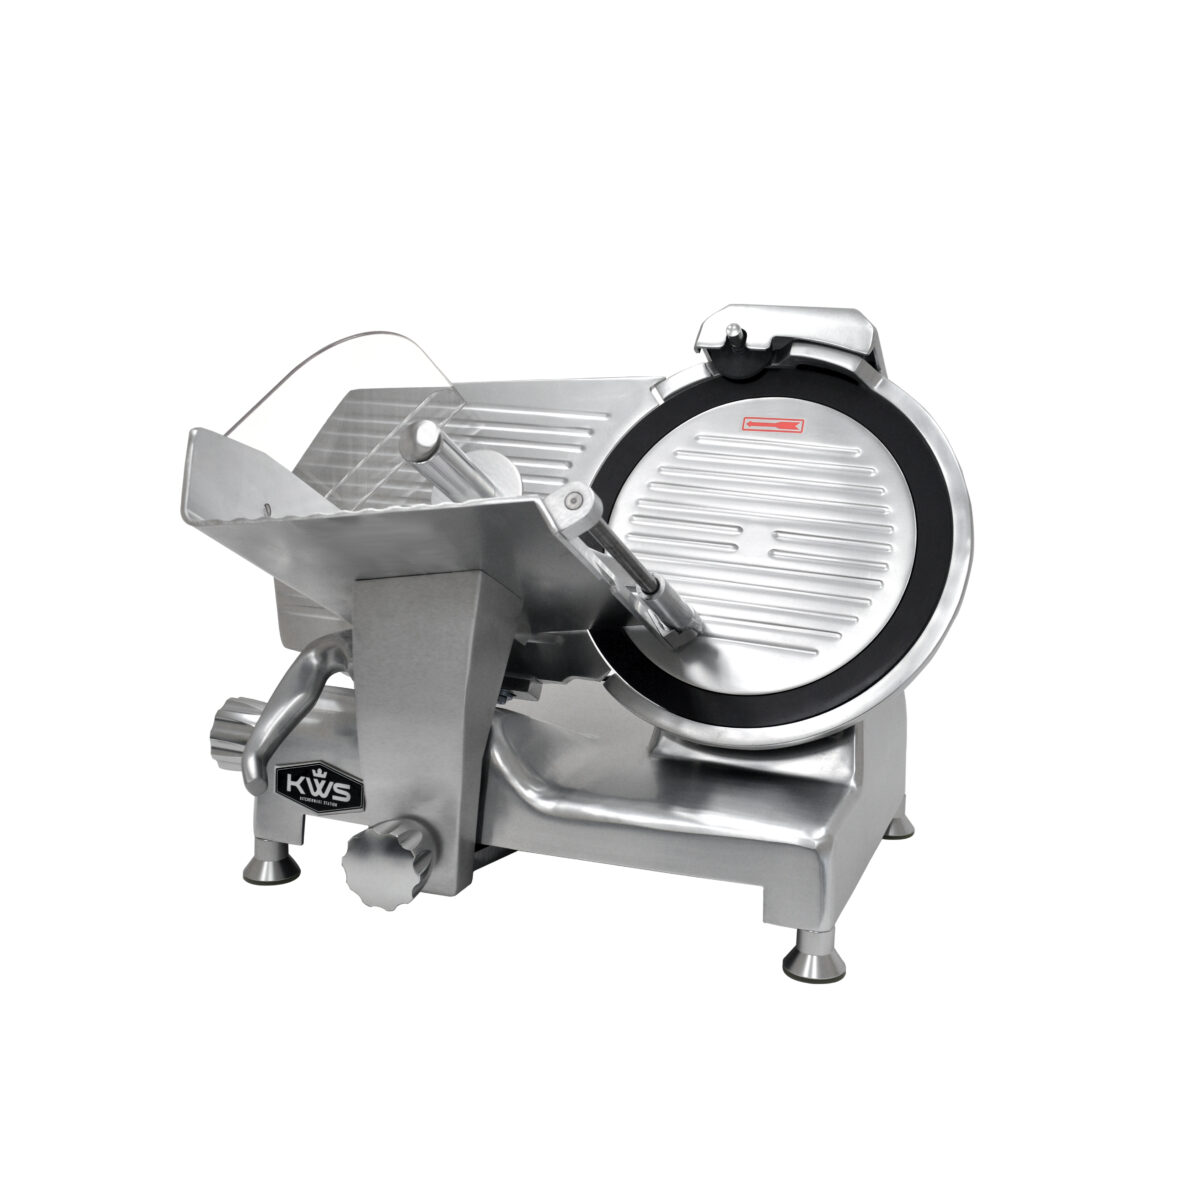 KWS metal collection commercial meat slicer